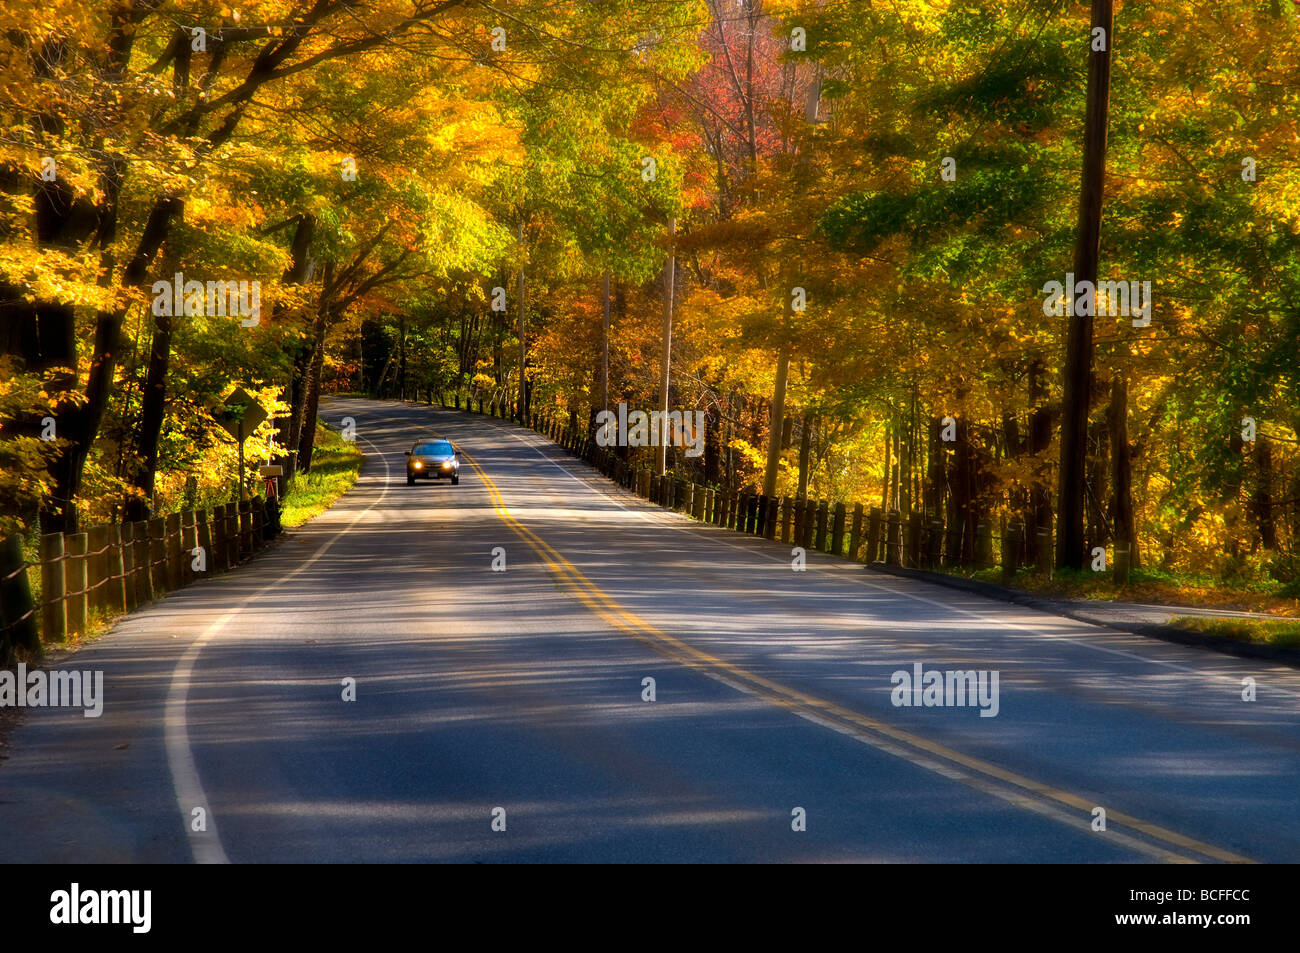 USA, Connecticut, Litchfield County - Stock Image